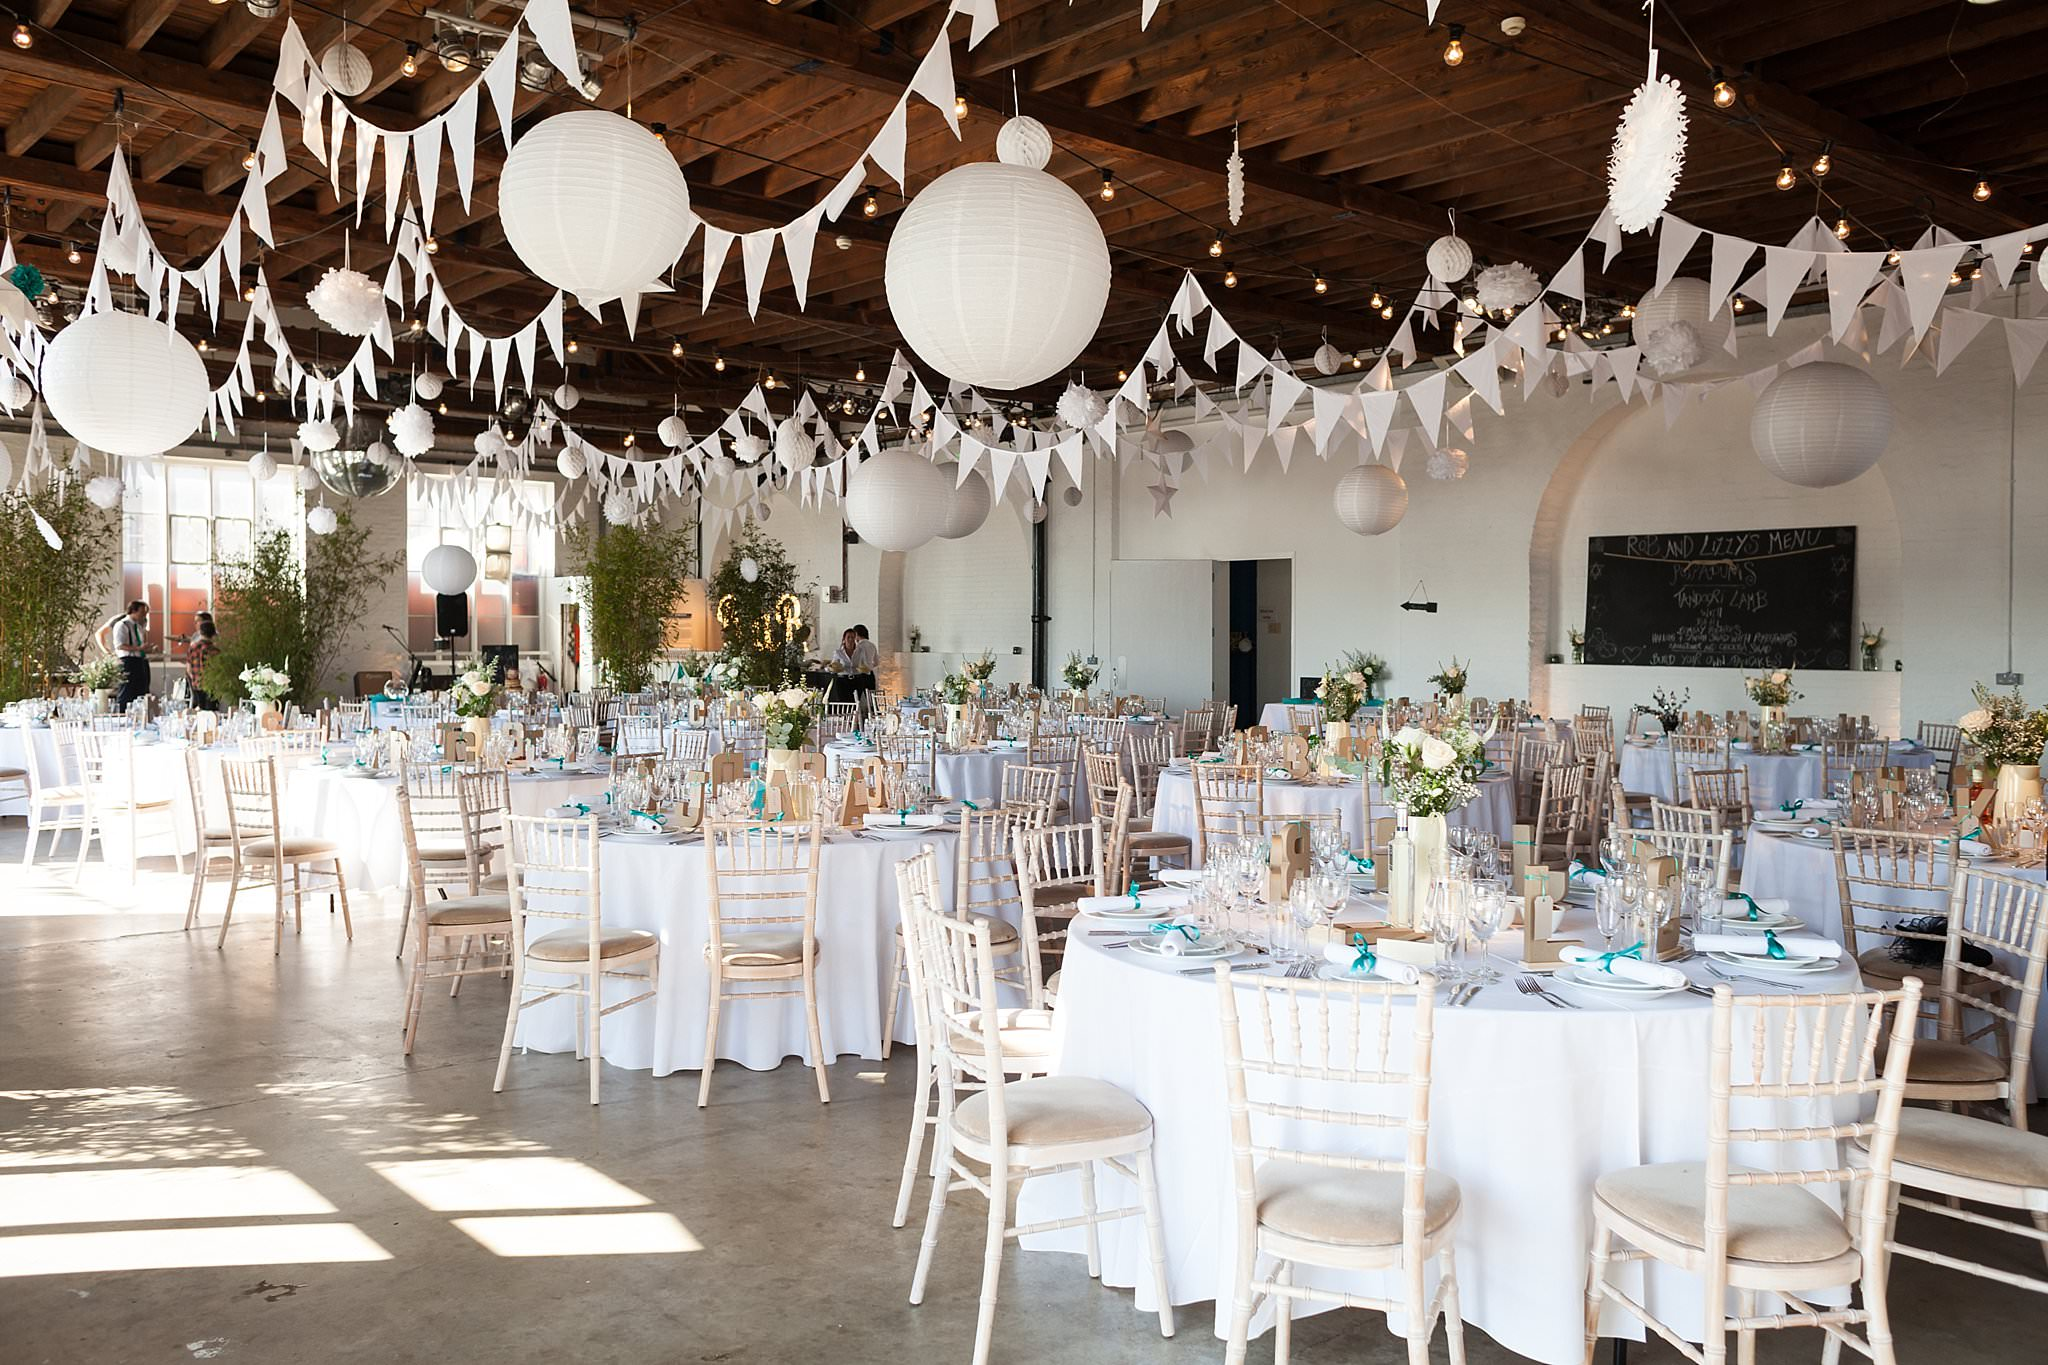 Trinity buoy wharf wedding with lace mon cheri bridal gown white bunting and hanging paper lanterns junglespirit Images